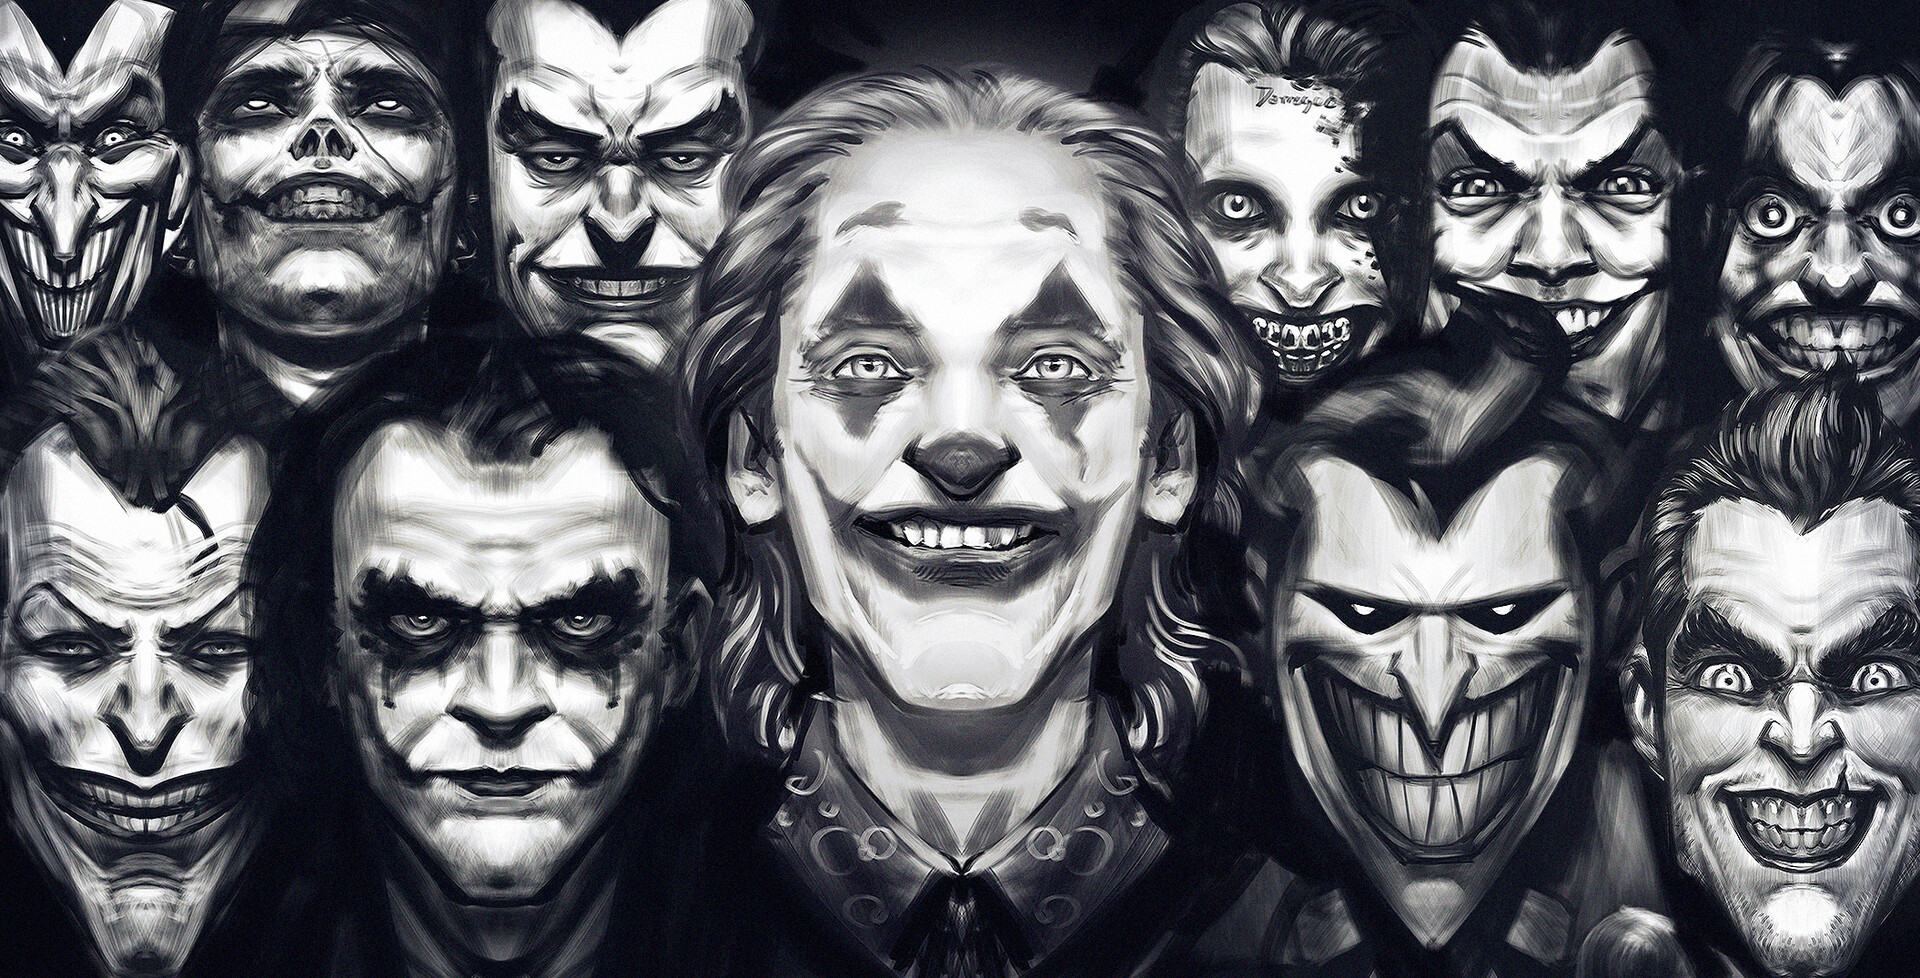 Guilherme Freitas Joker Wallpaper